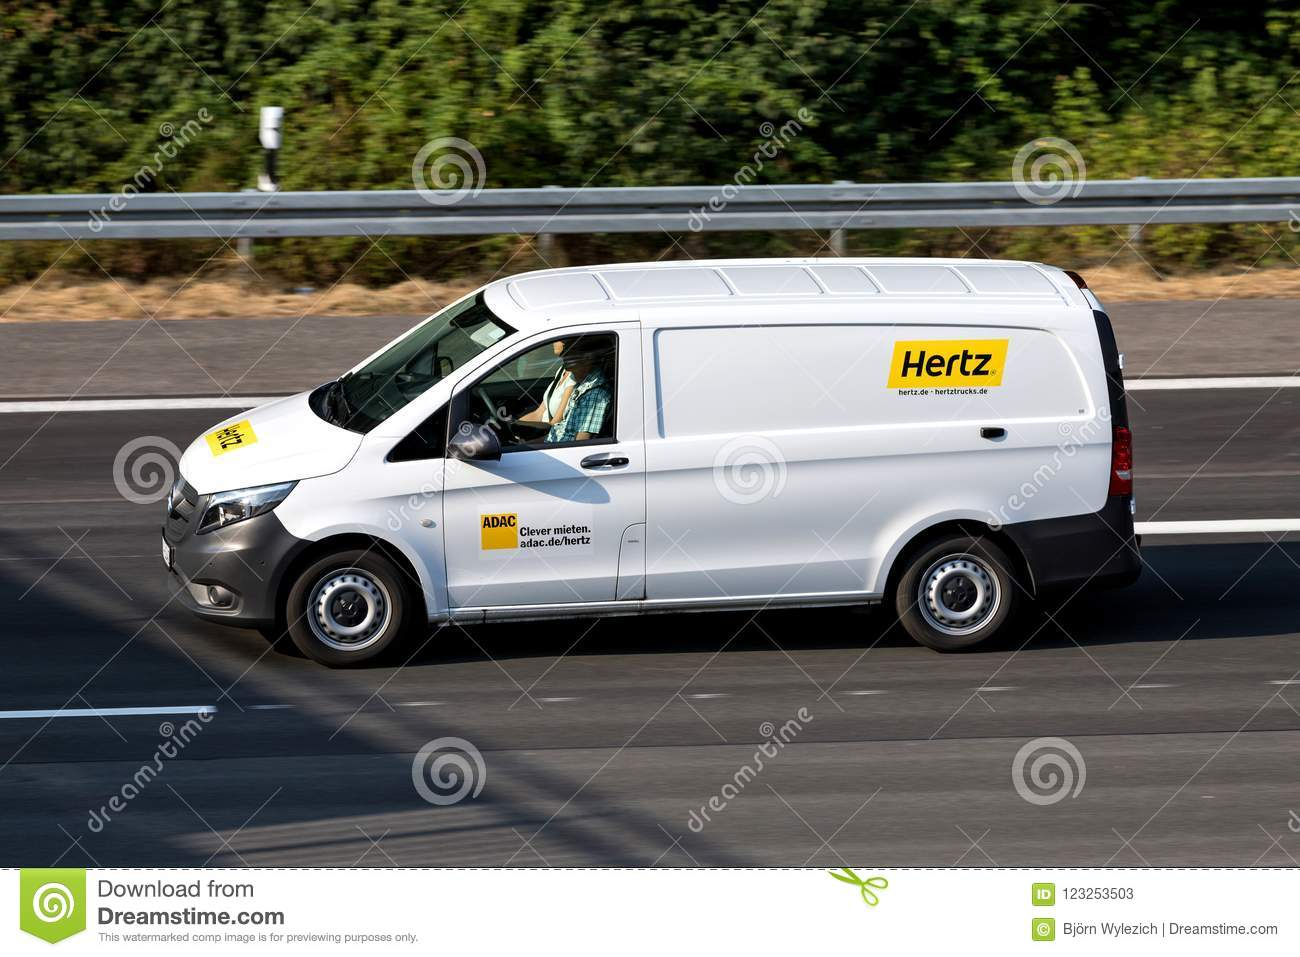 6e0a4275c0bb6f The Hertz Corporation is an American car rental company based in Estero